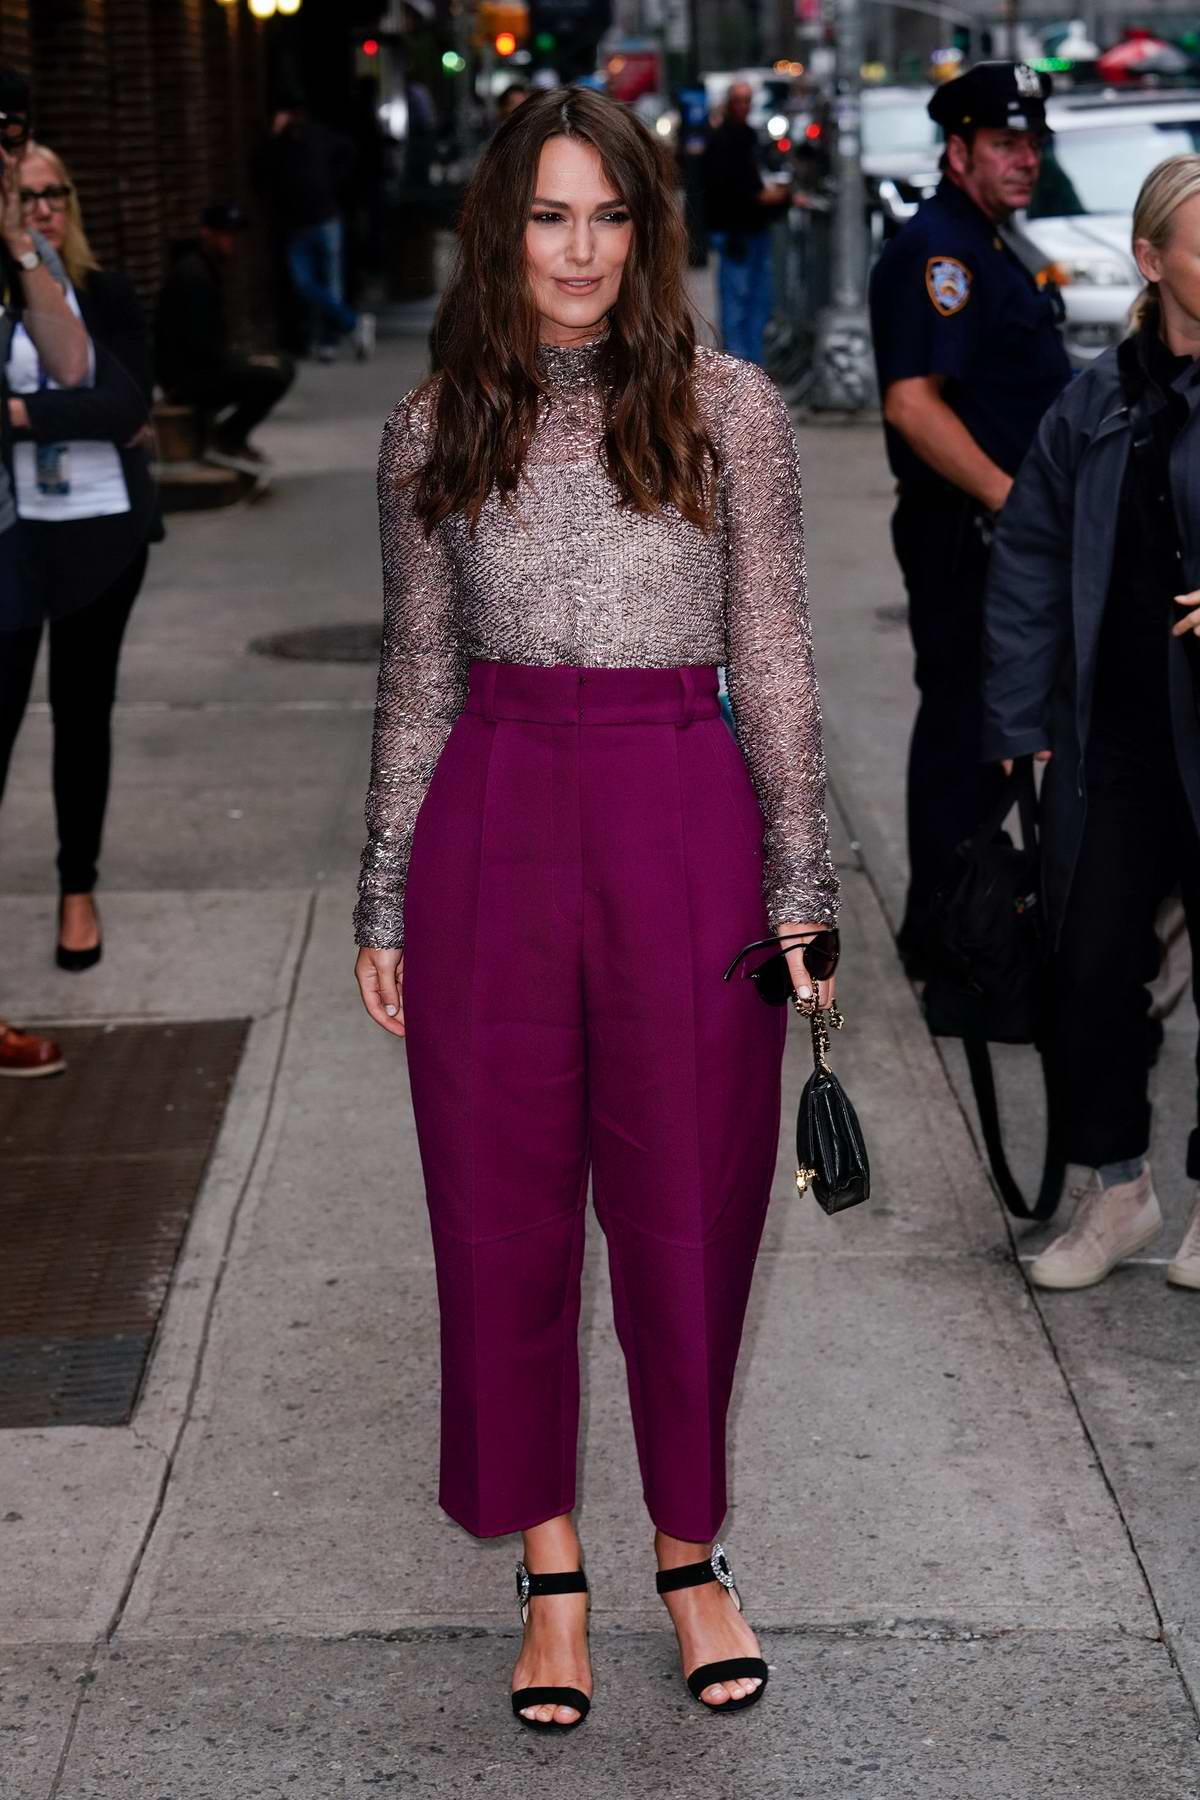 Keira Knightley looks pretty in purple as she arrives at Stephen Colbert Show in New York City